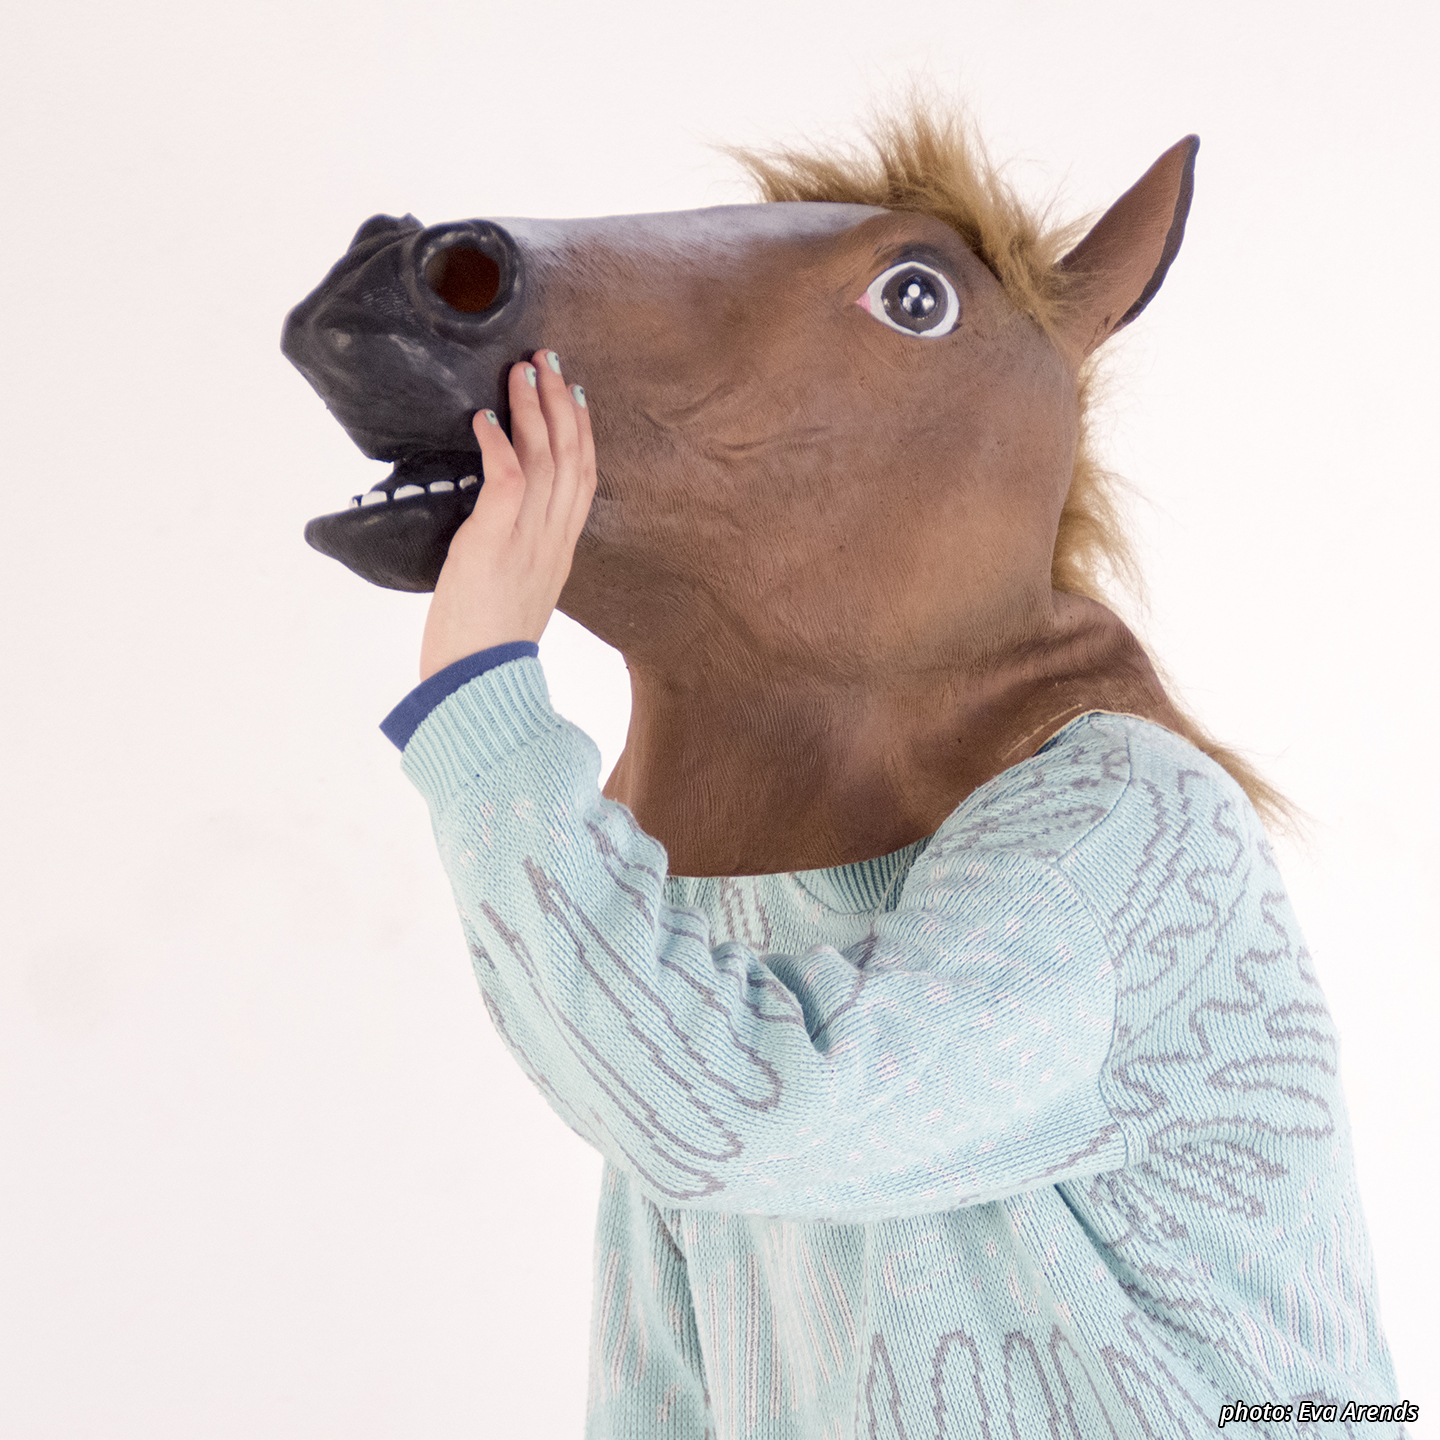 Picture of a character (Horseboy) from the waist up in a light blue retro polyester sweater with abstract design. His nails are painted a similar color and he wears a latex chestnut horse mask that is visible in profile. He has his hands next to his open mouth as though he is amplifying something he is shouting.